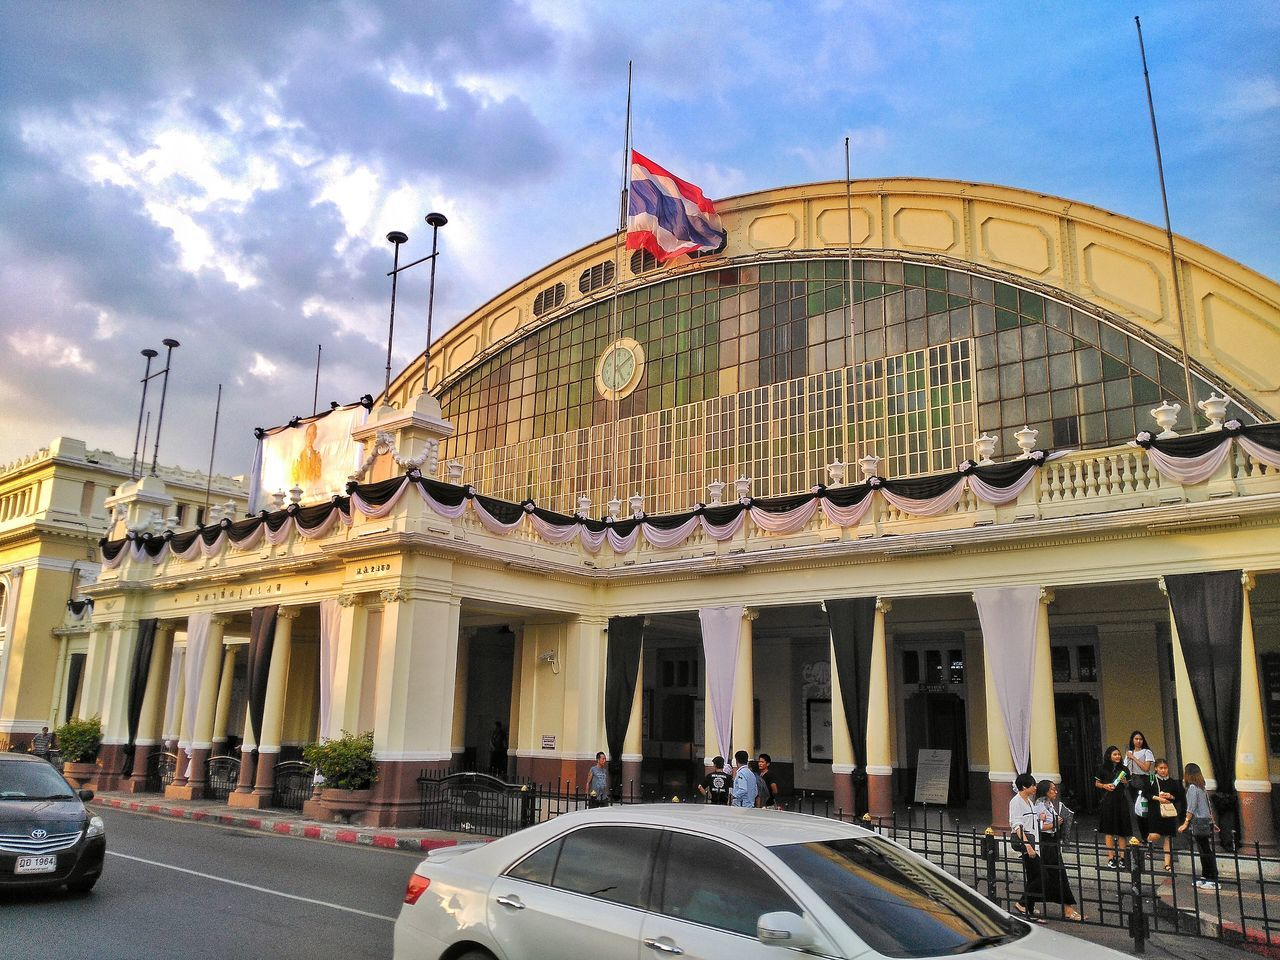 Architecture Building Exterior Built Structure Sky Flag City Travel Destinations Outdoors No People Day Railwaystation Bangkokstation